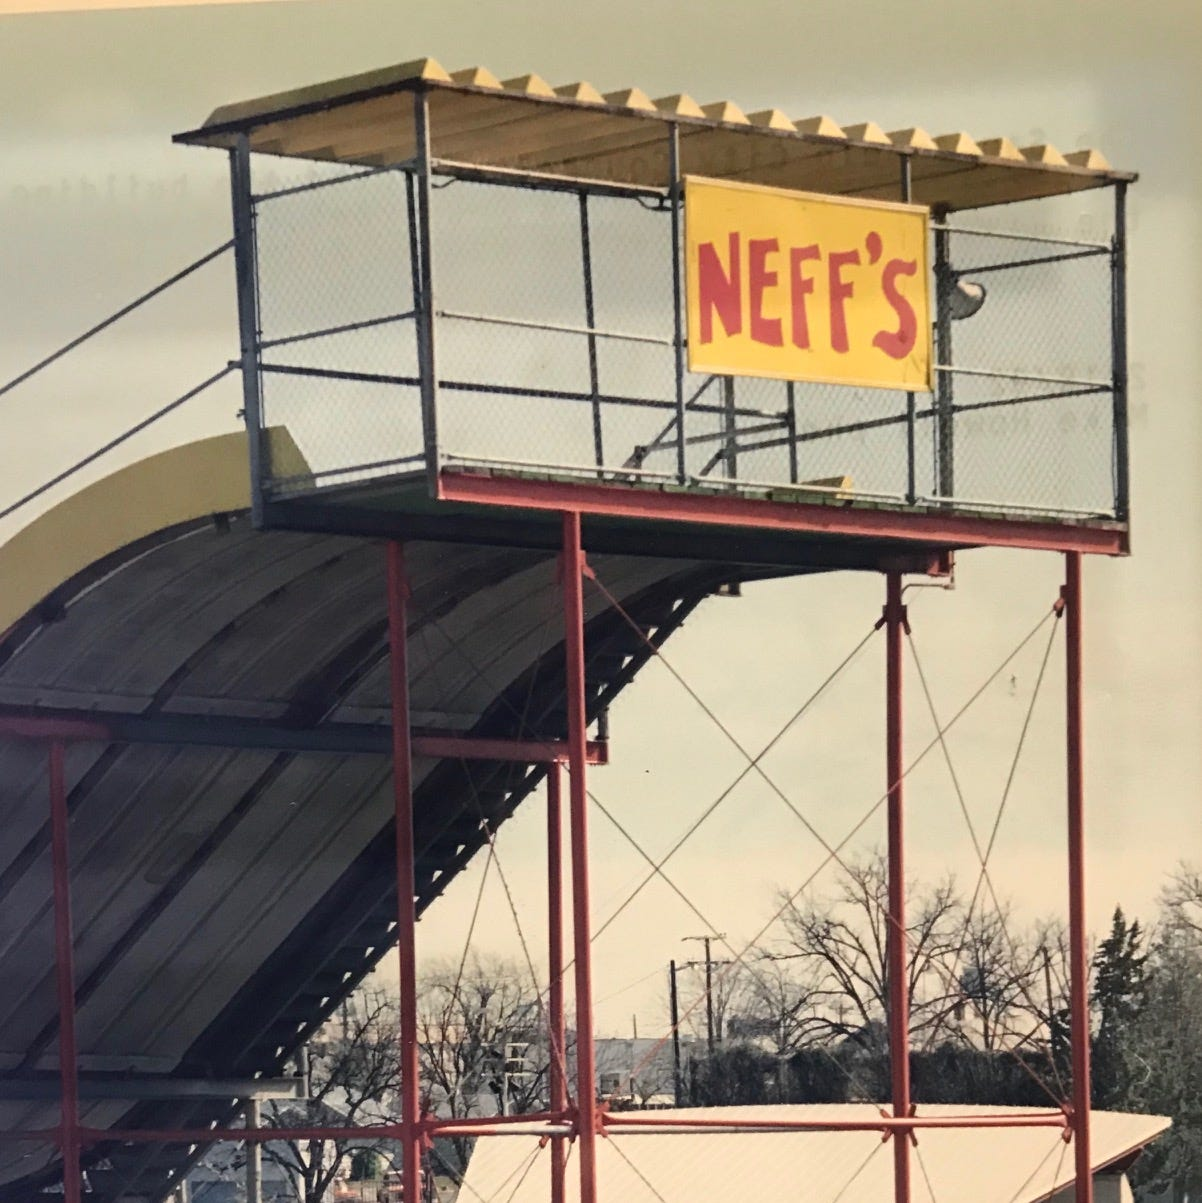 Neff's was the best little amusement park in West Texas